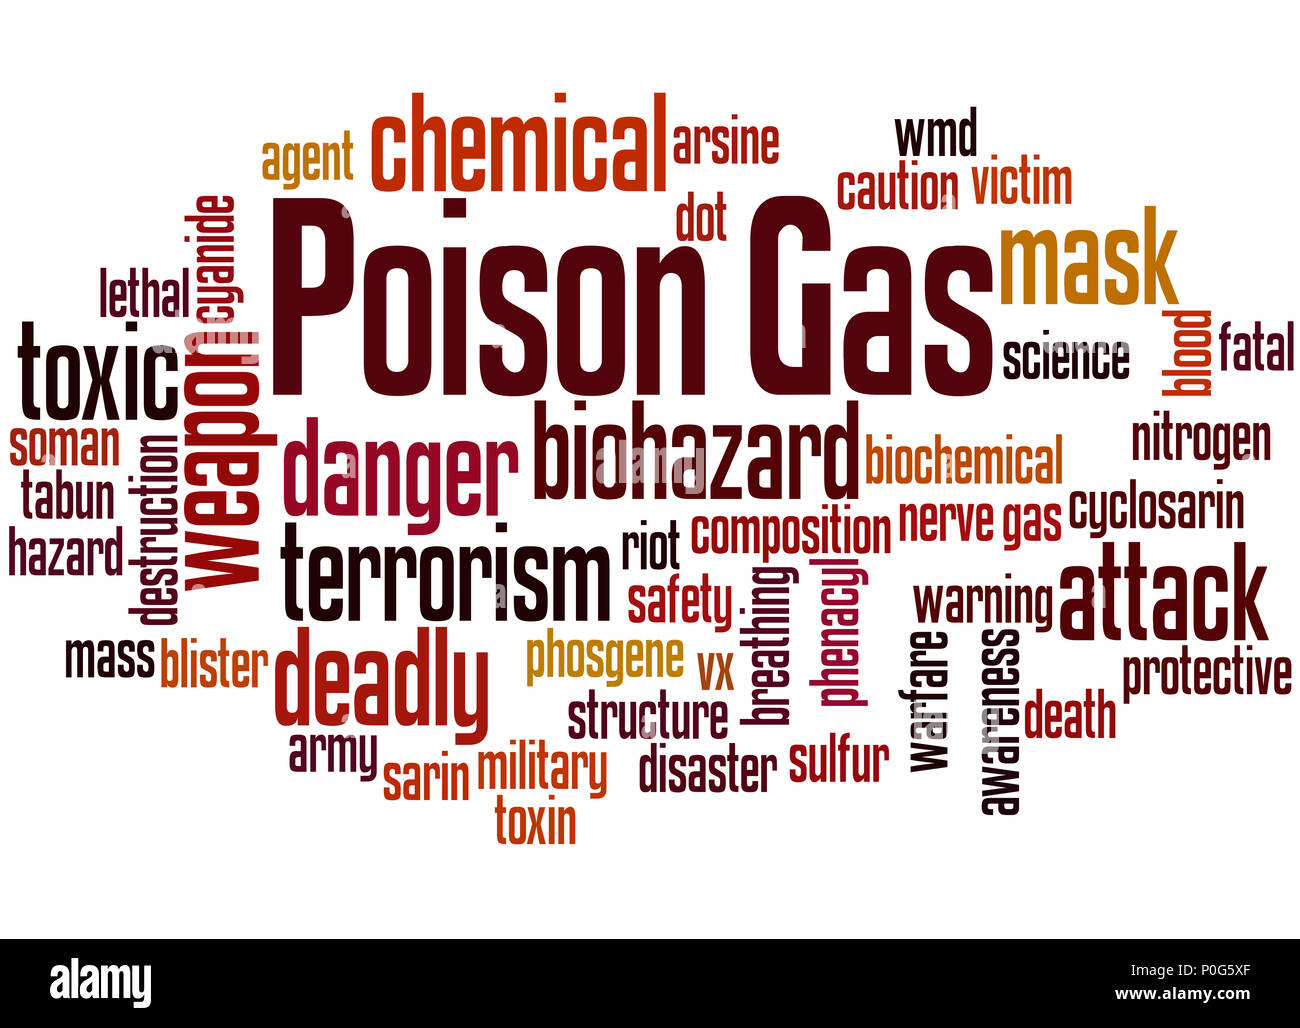 Poison gas word cloud concept on white background. - Stock Image